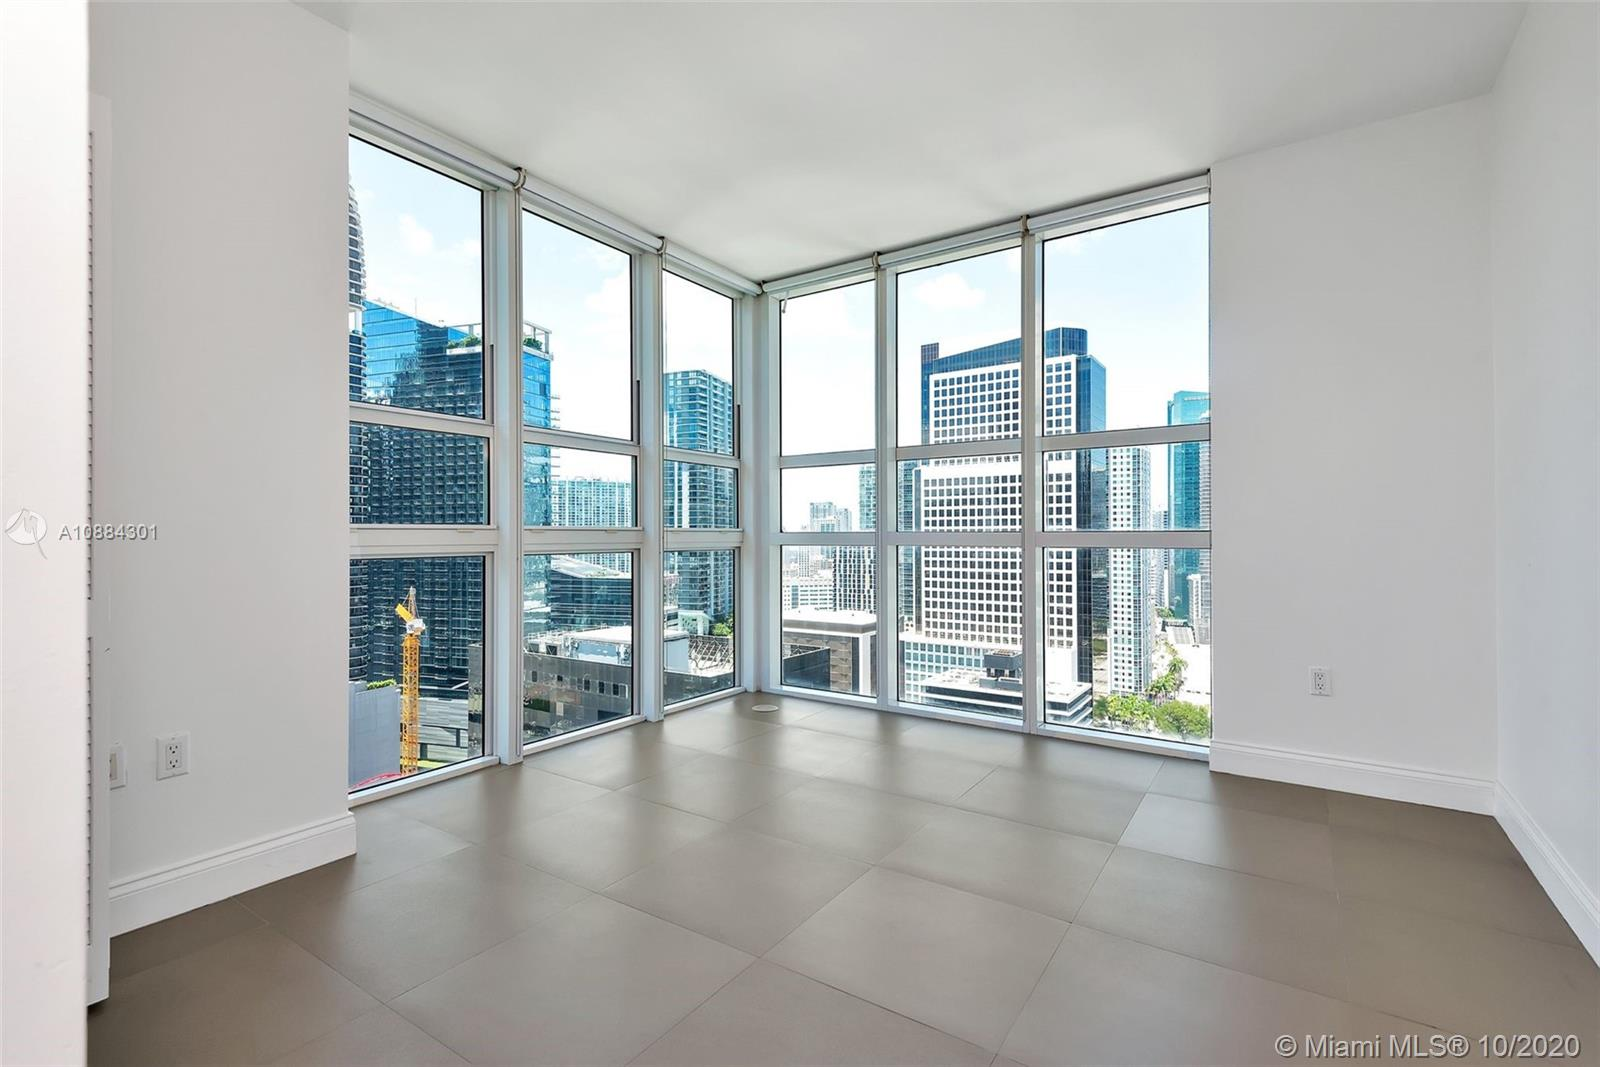 The Plaza on Brickell 2 #2701 - 951 BRICKELL AVENUE #2701, Miami, FL 33131